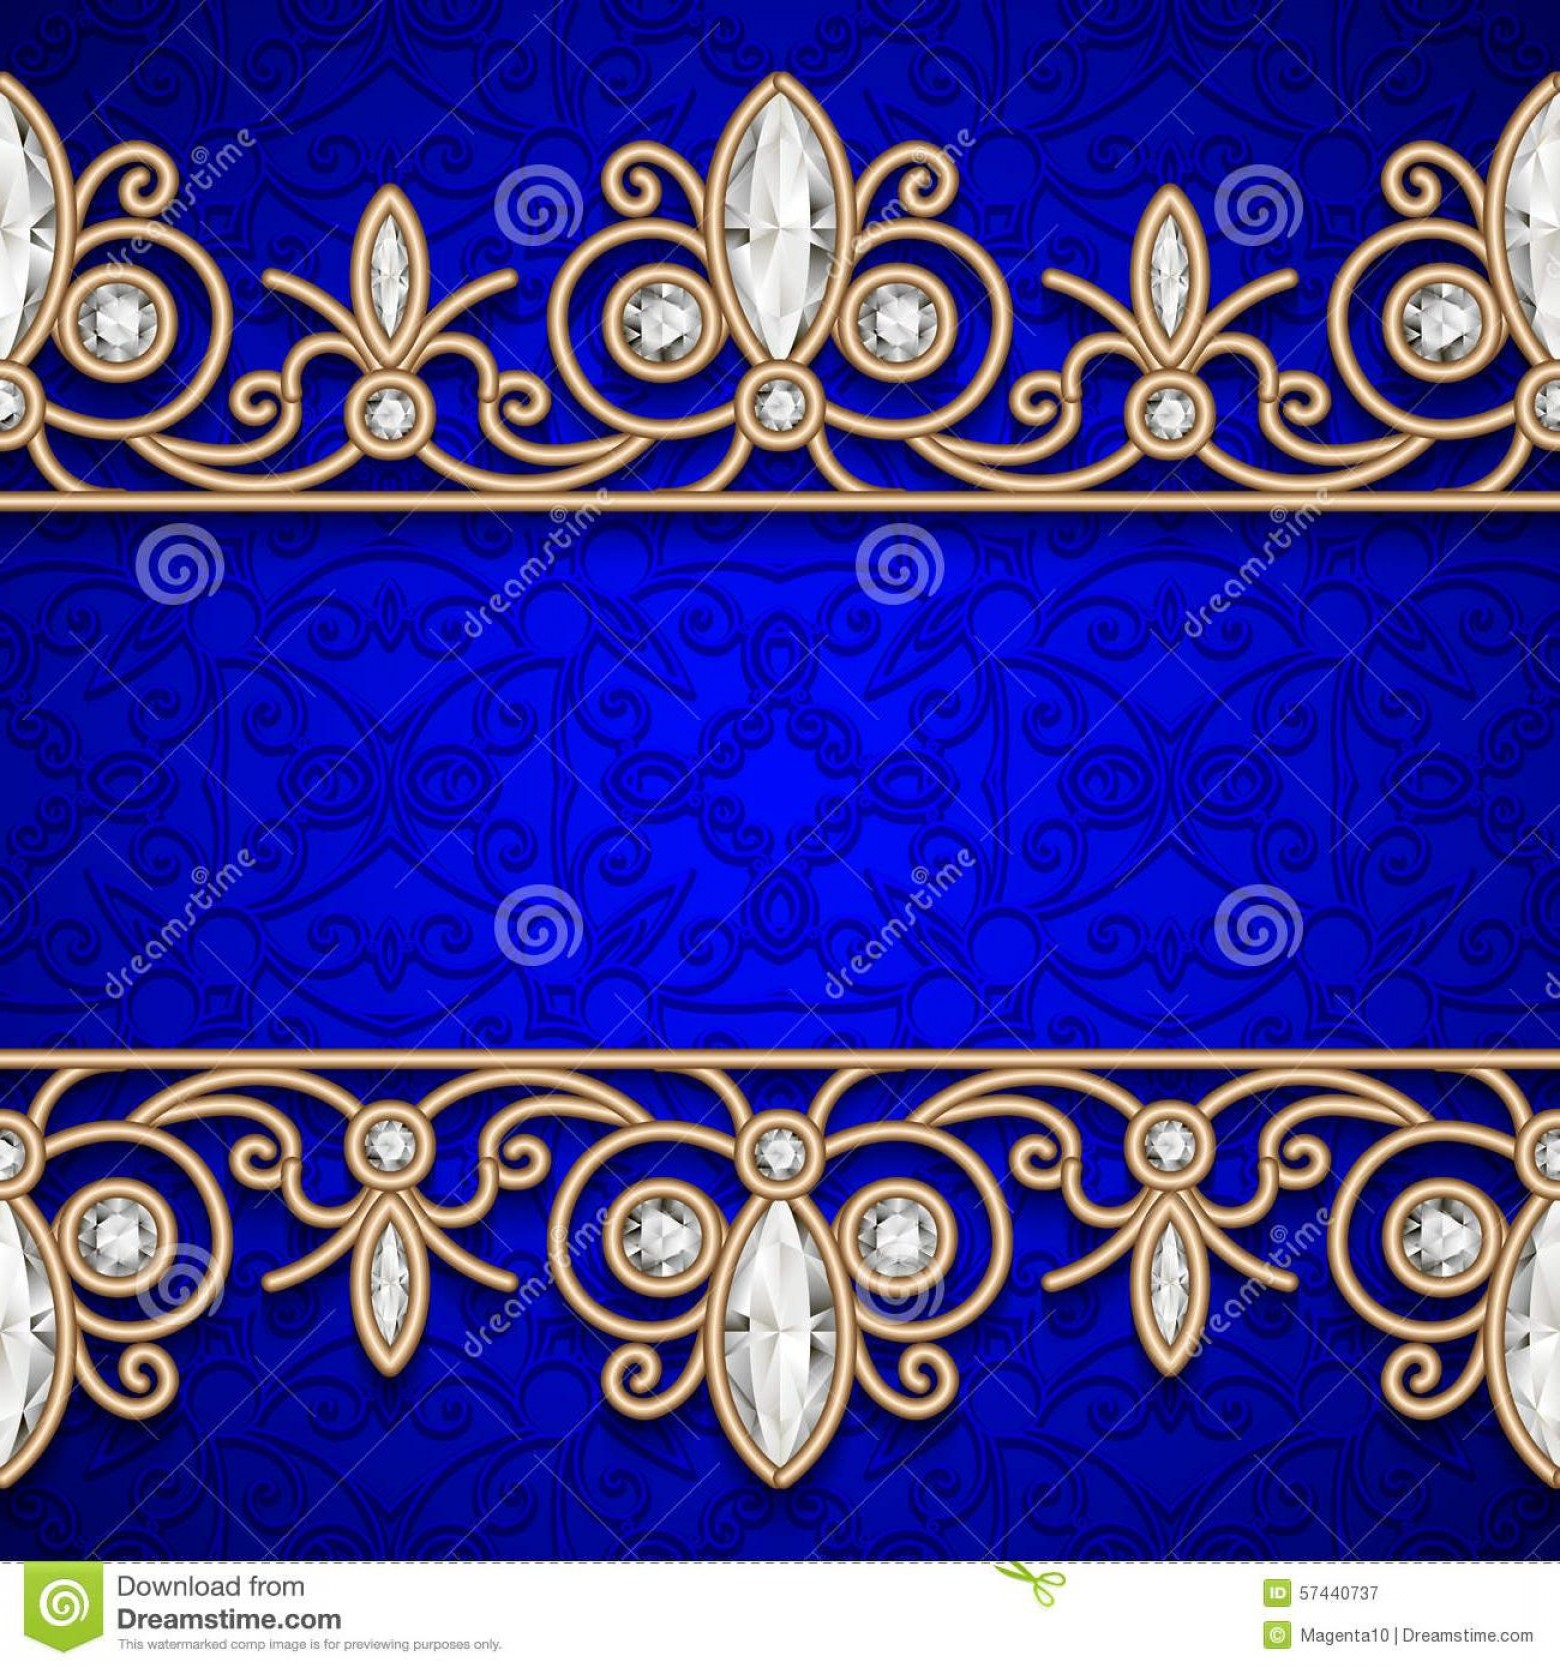 Blue And Gold Border Vector: Best Free Gold Border Frame Black Vintage Background Jewelry Seamless Borders Photos